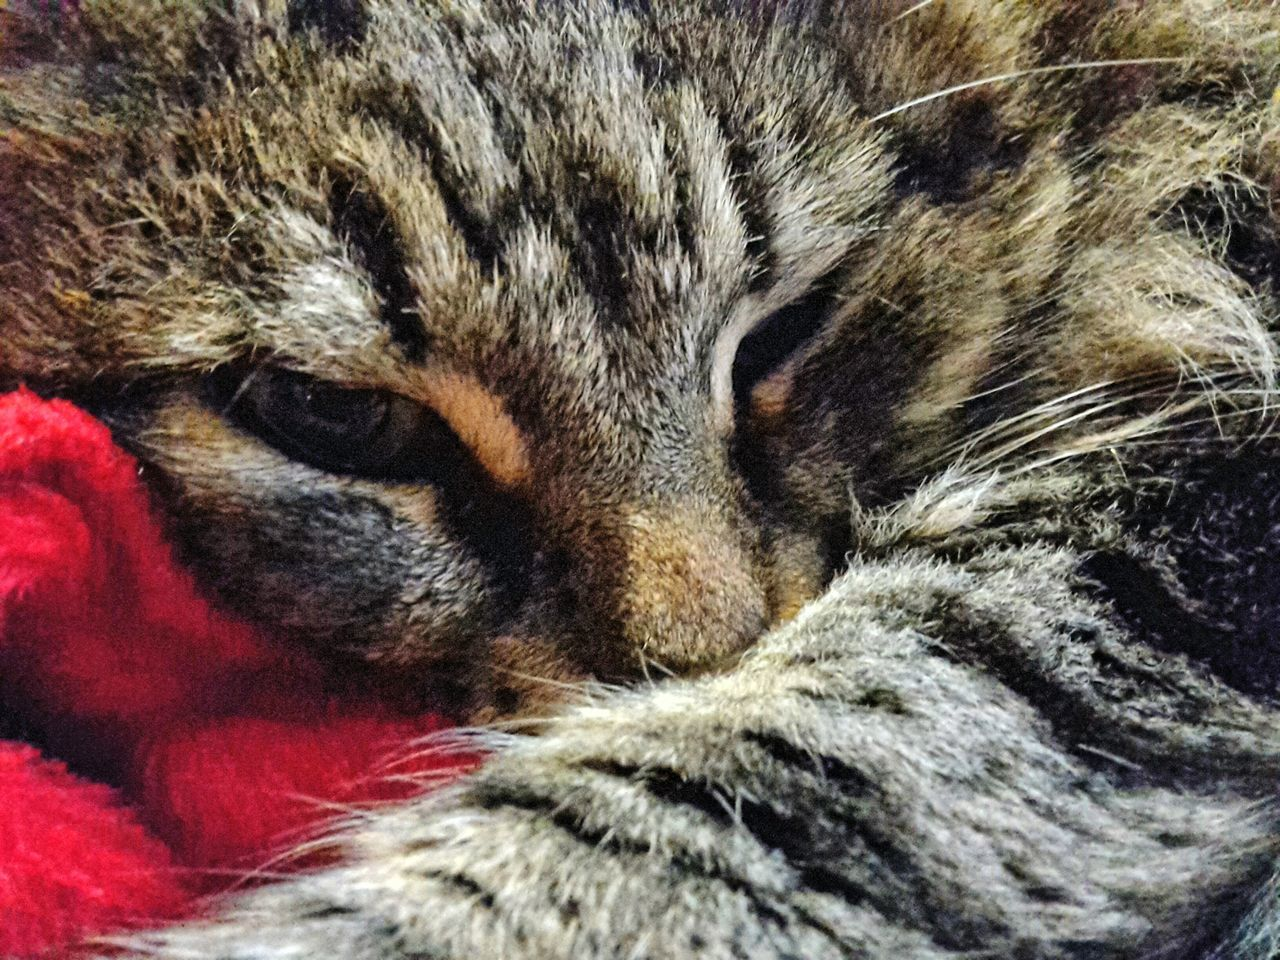 animal themes, one animal, pets, domestic cat, domestic animals, close-up, feline, no people, whisker, mammal, indoors, day, nature